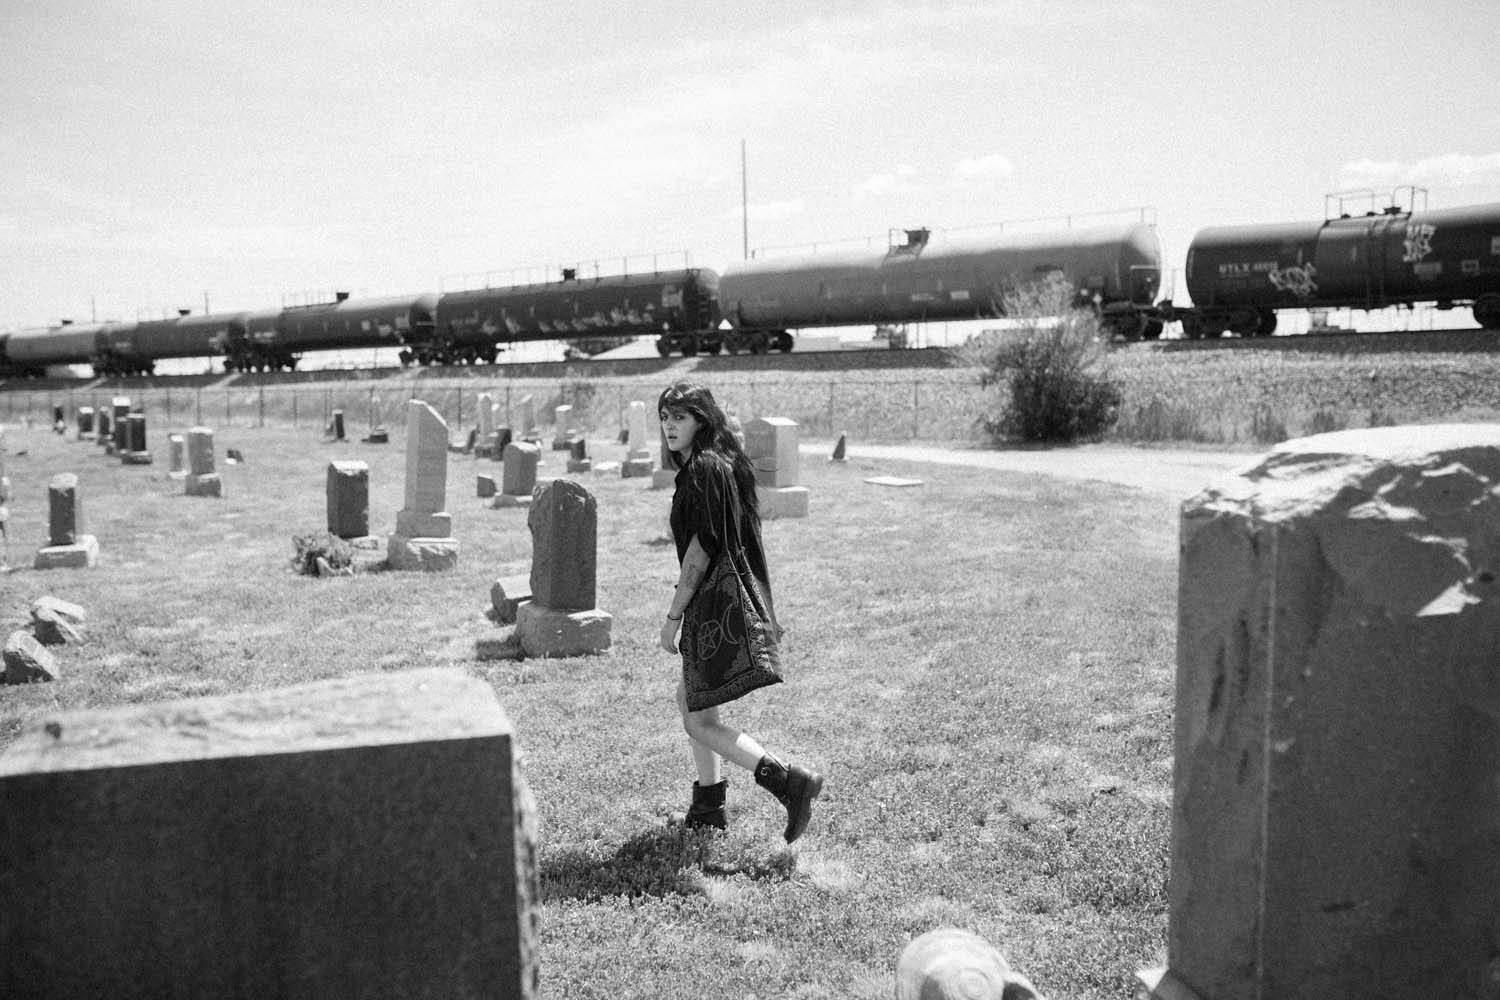 Fashion Photography NYC Street Fashion Photographer New York tattooed fashion model headstones graves Riverside Cemetery graveyard oil train passes industrial area Denver